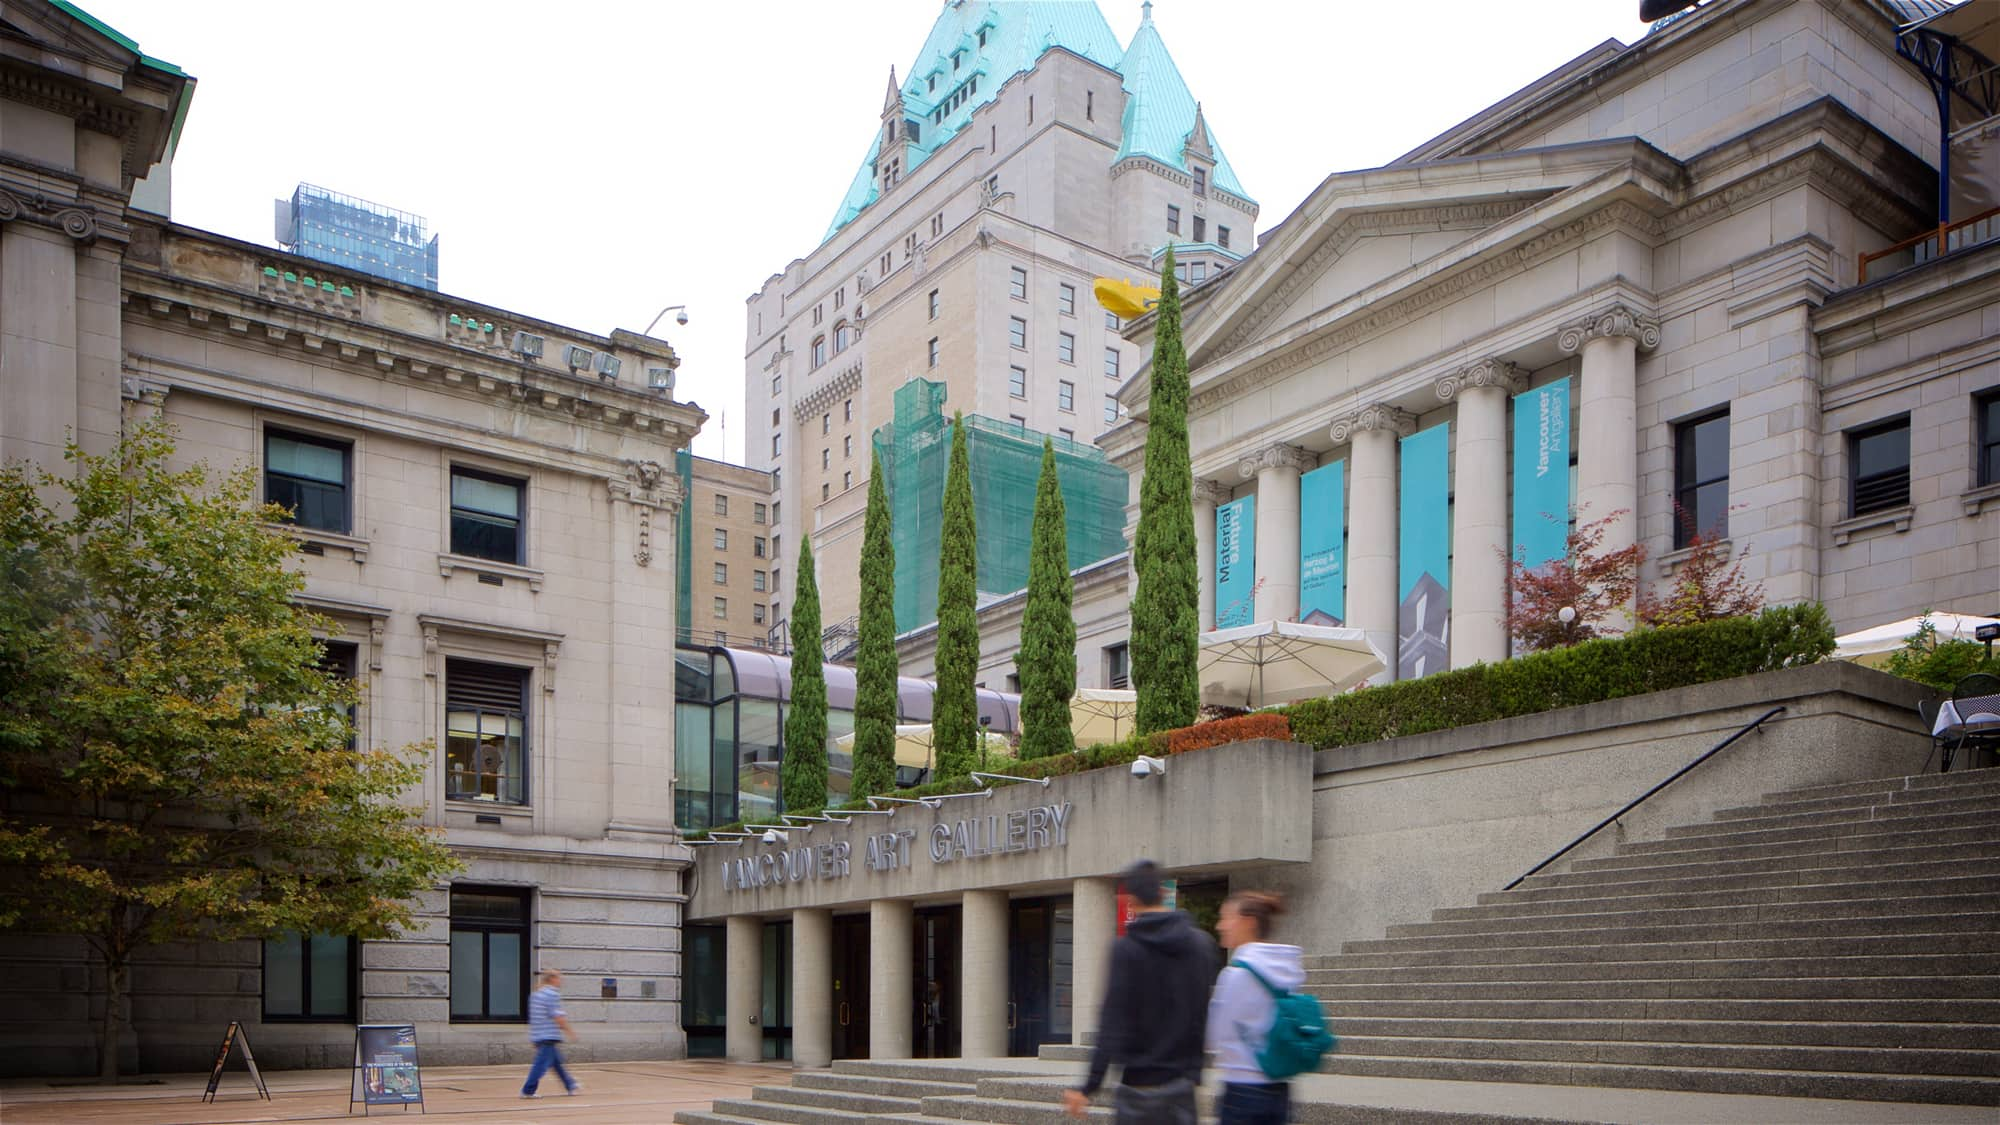 Vancouver Art Gallery is one of many Canadian museums with virtual tours